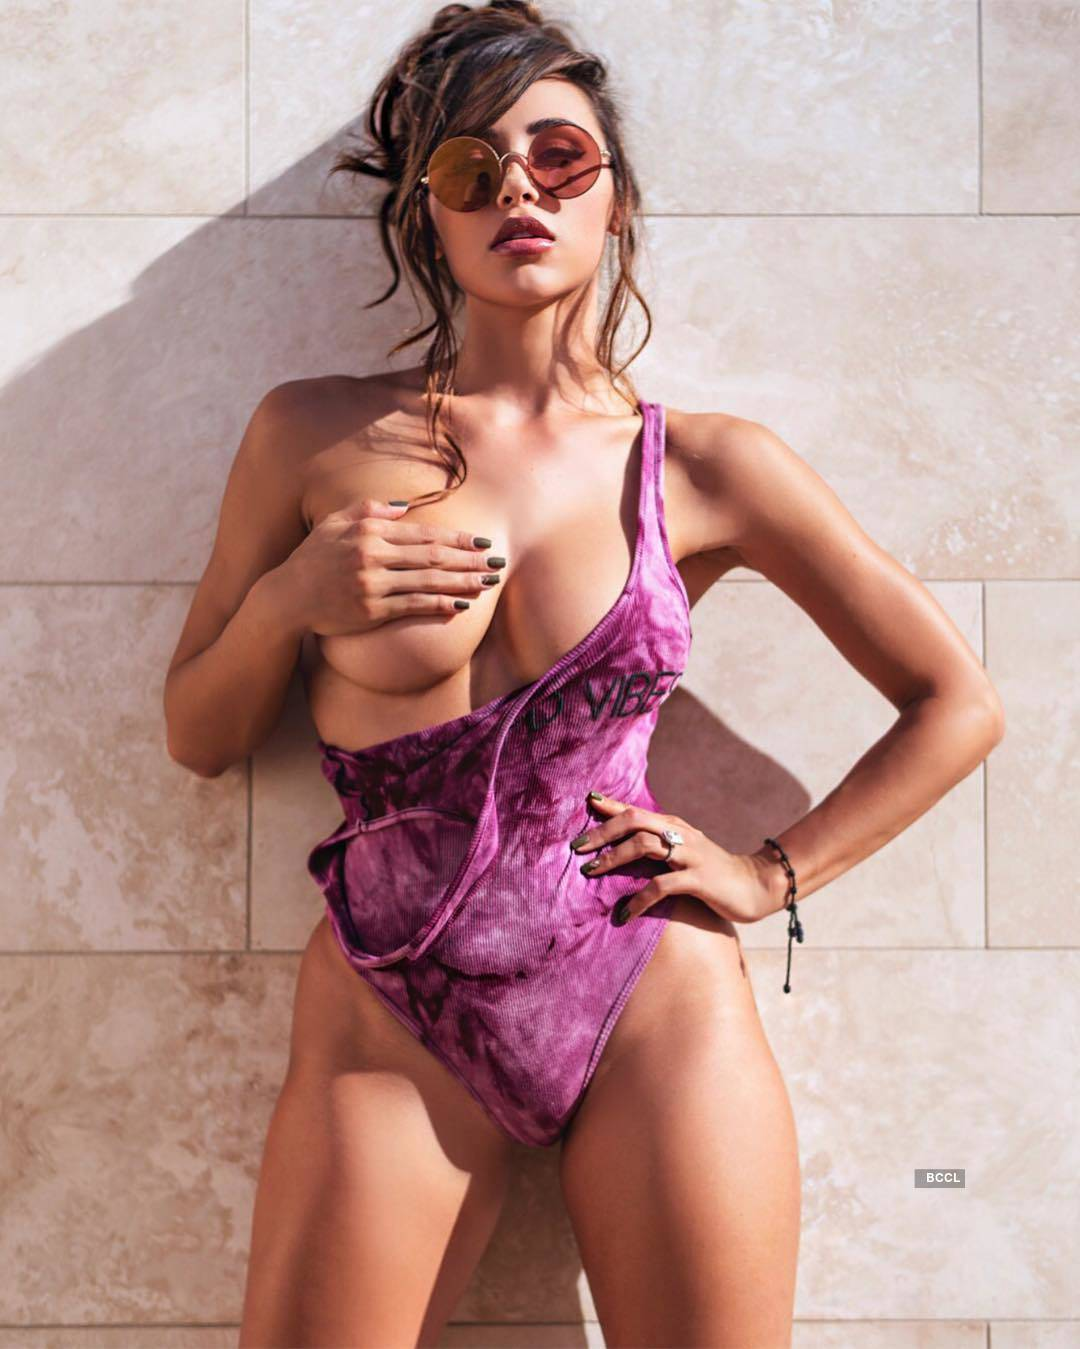 Ana Cheri, the Instagram phenomenon